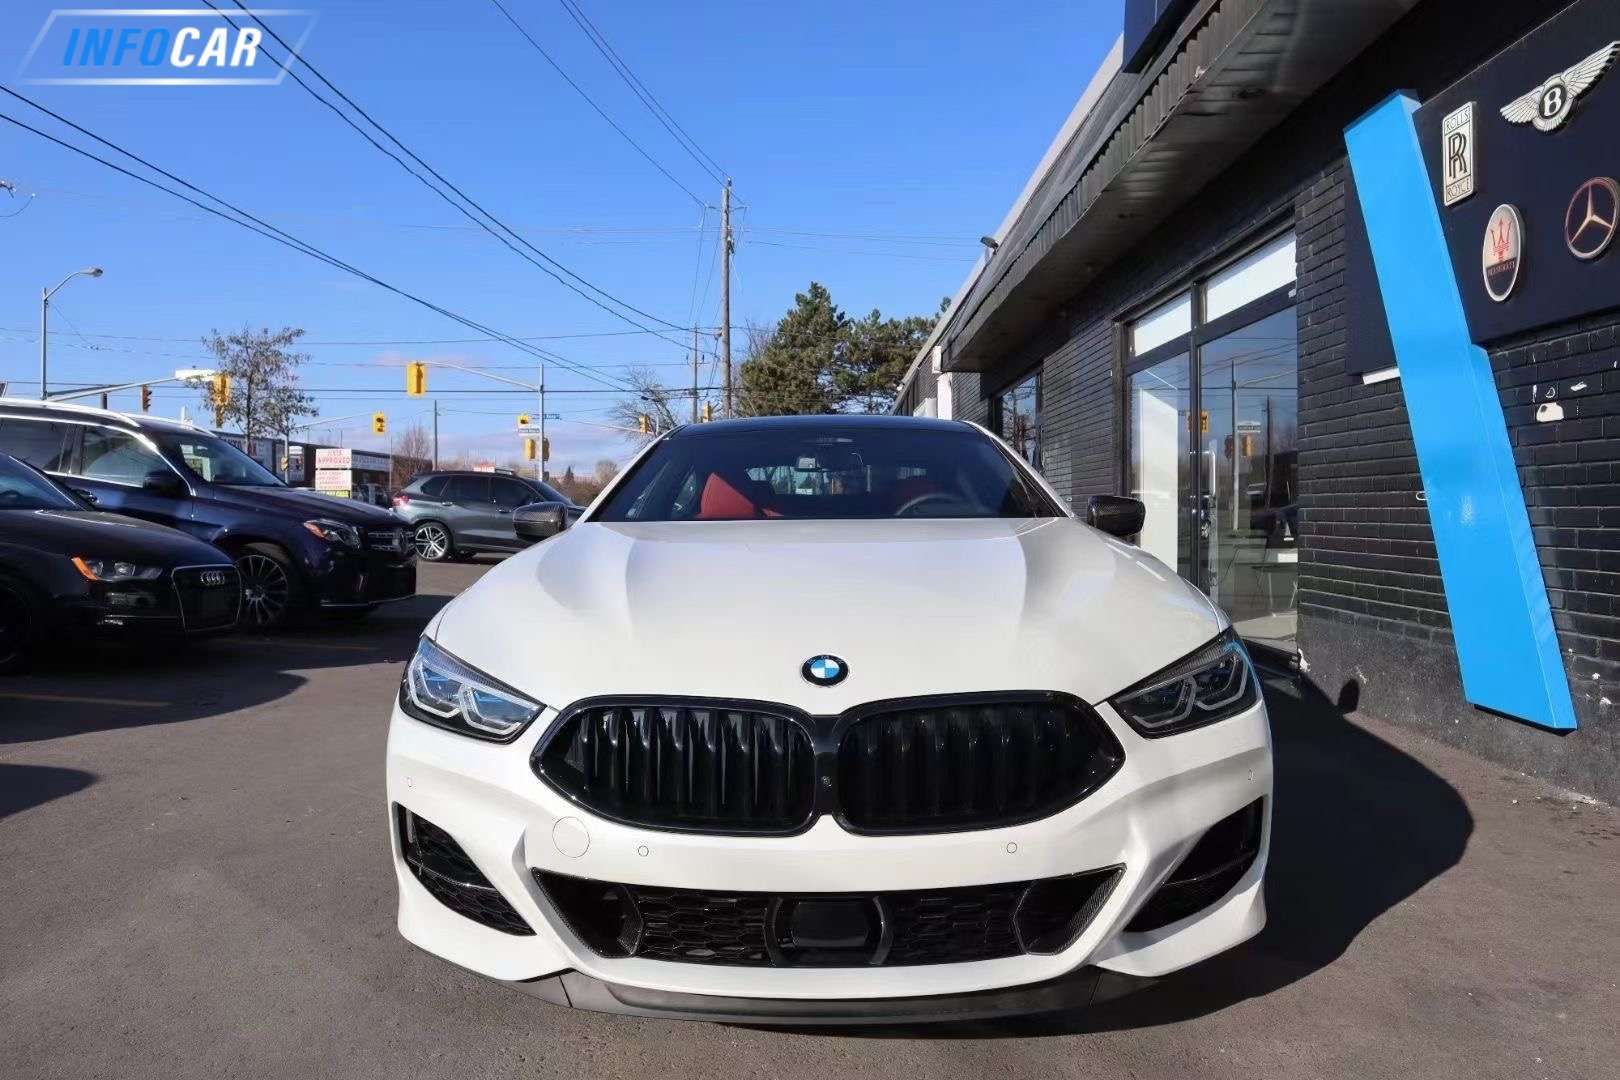 2020 BMW 8-Series Gran Coupe m850 xdrive gran coupe - INFOCAR - Toronto's Most Comprehensive New and Used Auto Trading Platform